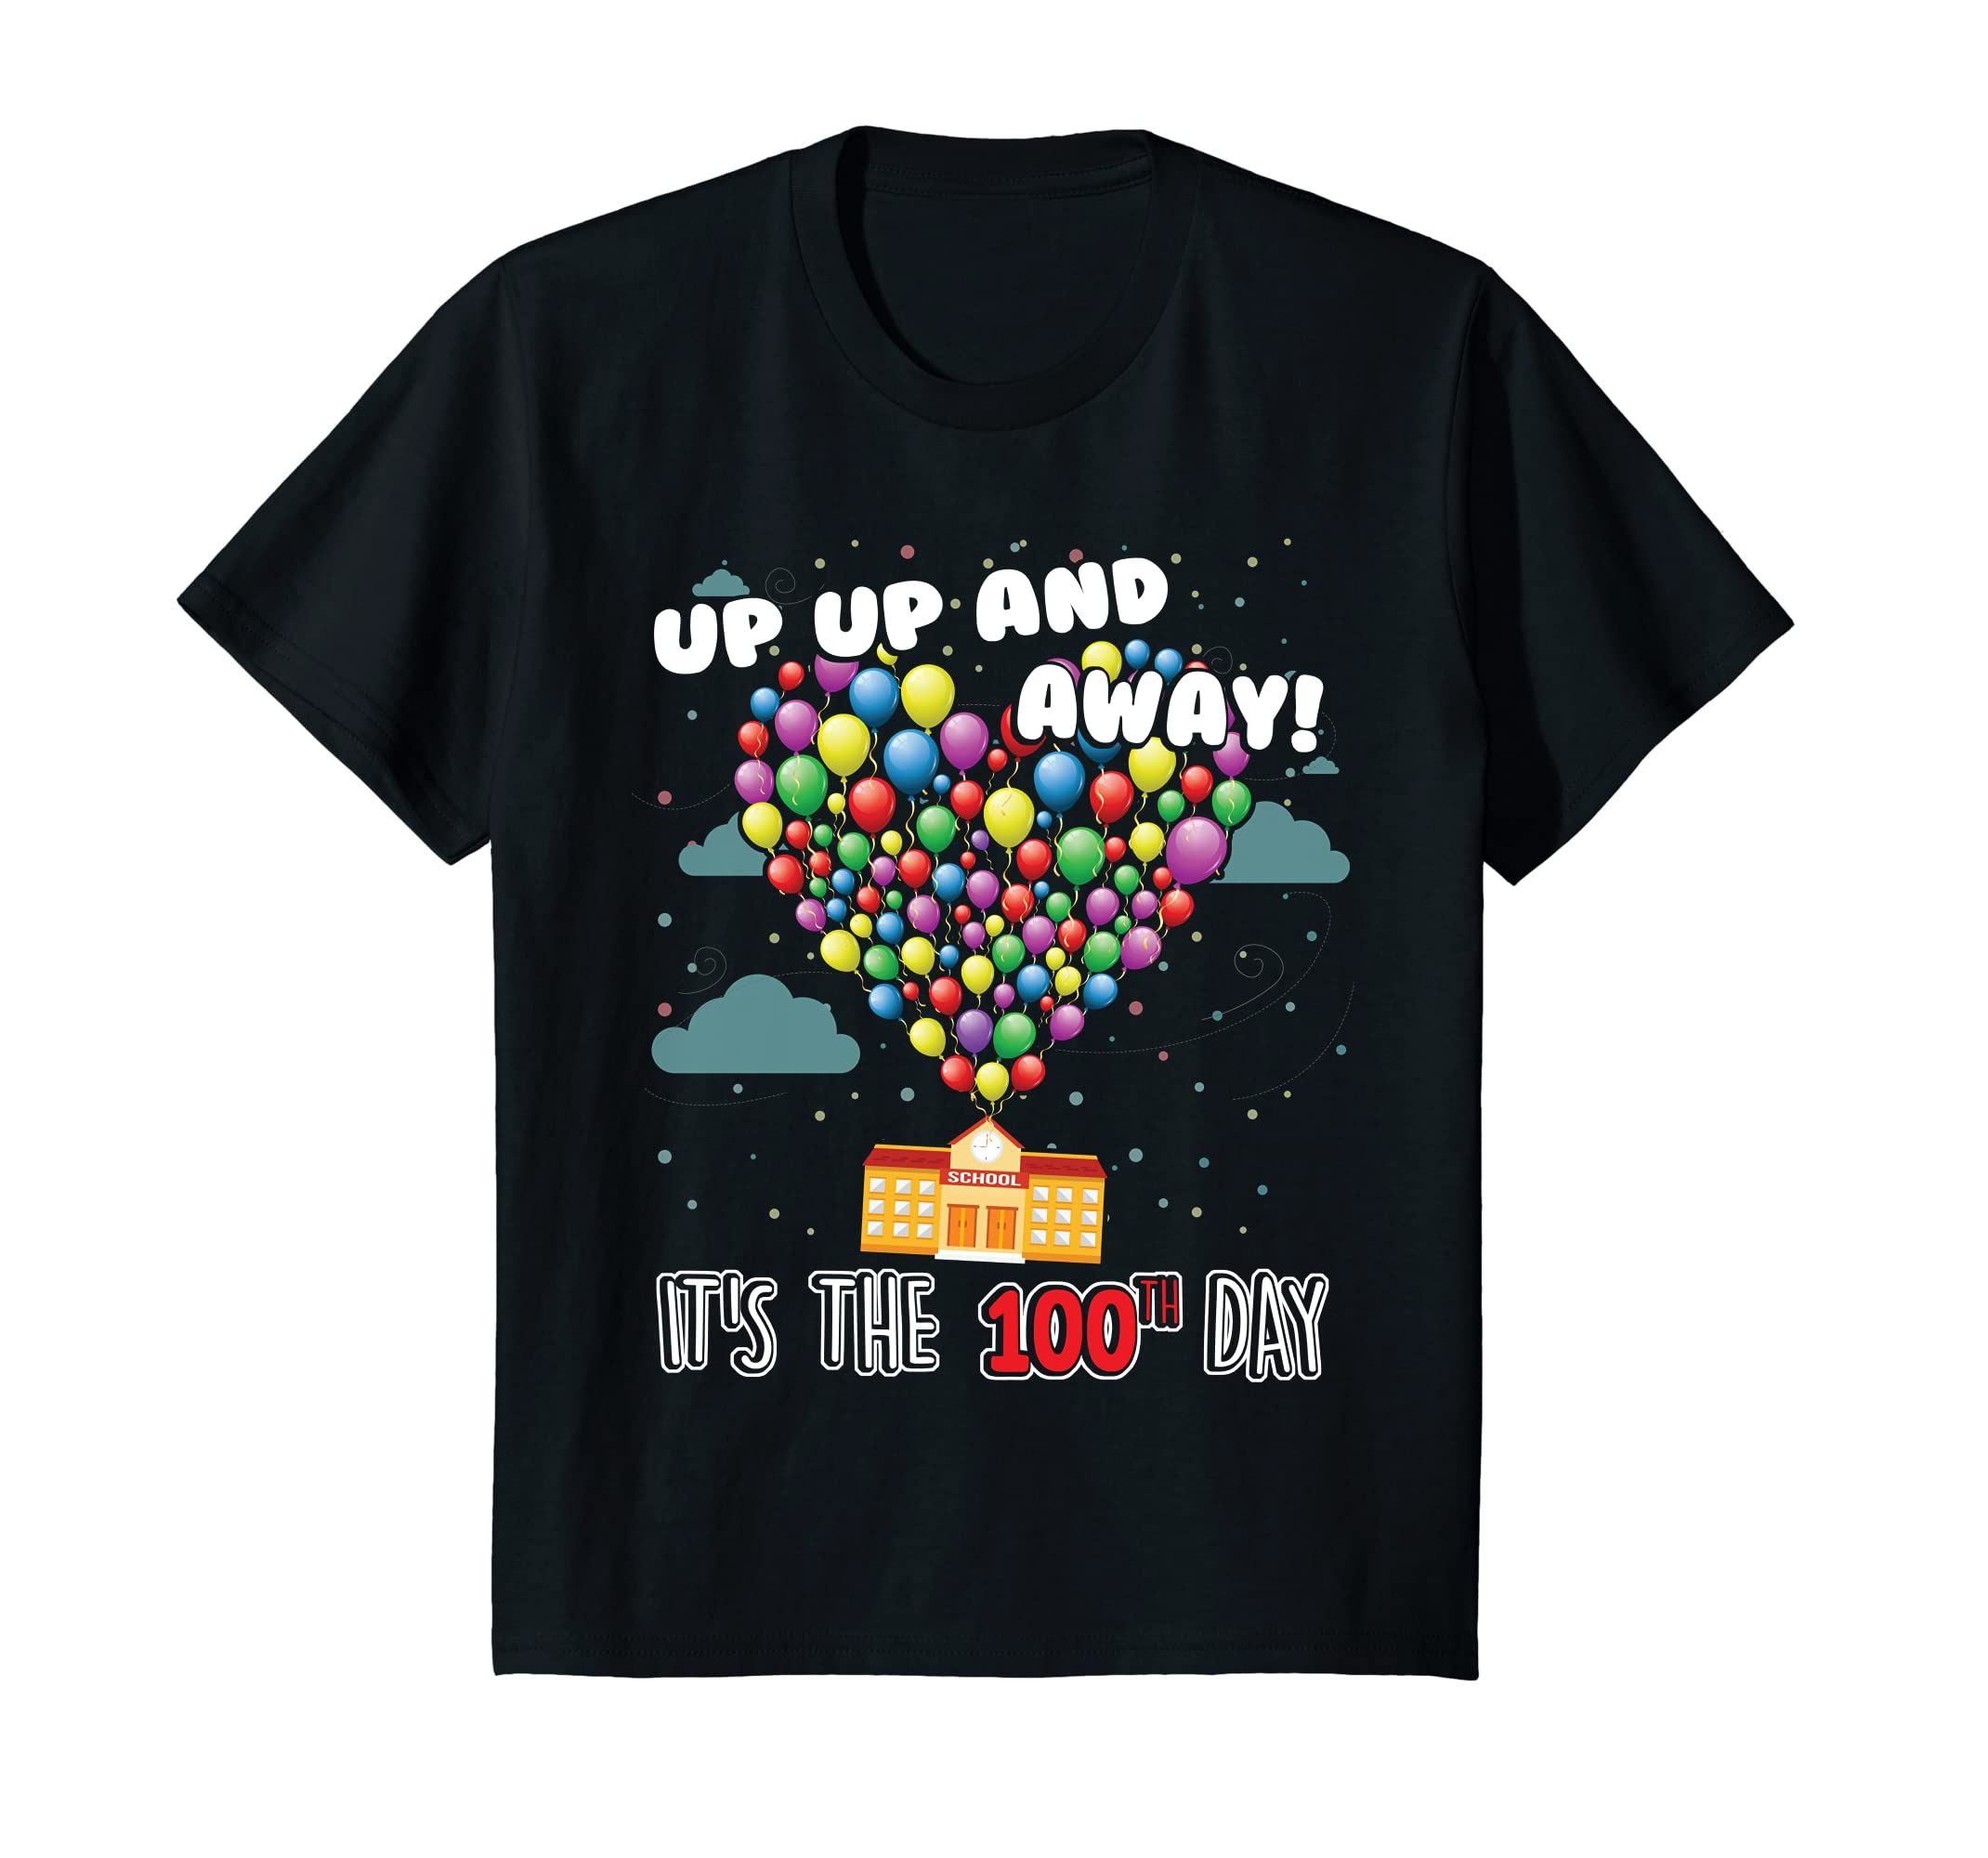 7b65ececb68 Amazon.com  Up Up And Away Its The 100th Day T Shirt For Youth And Adult   Clothing